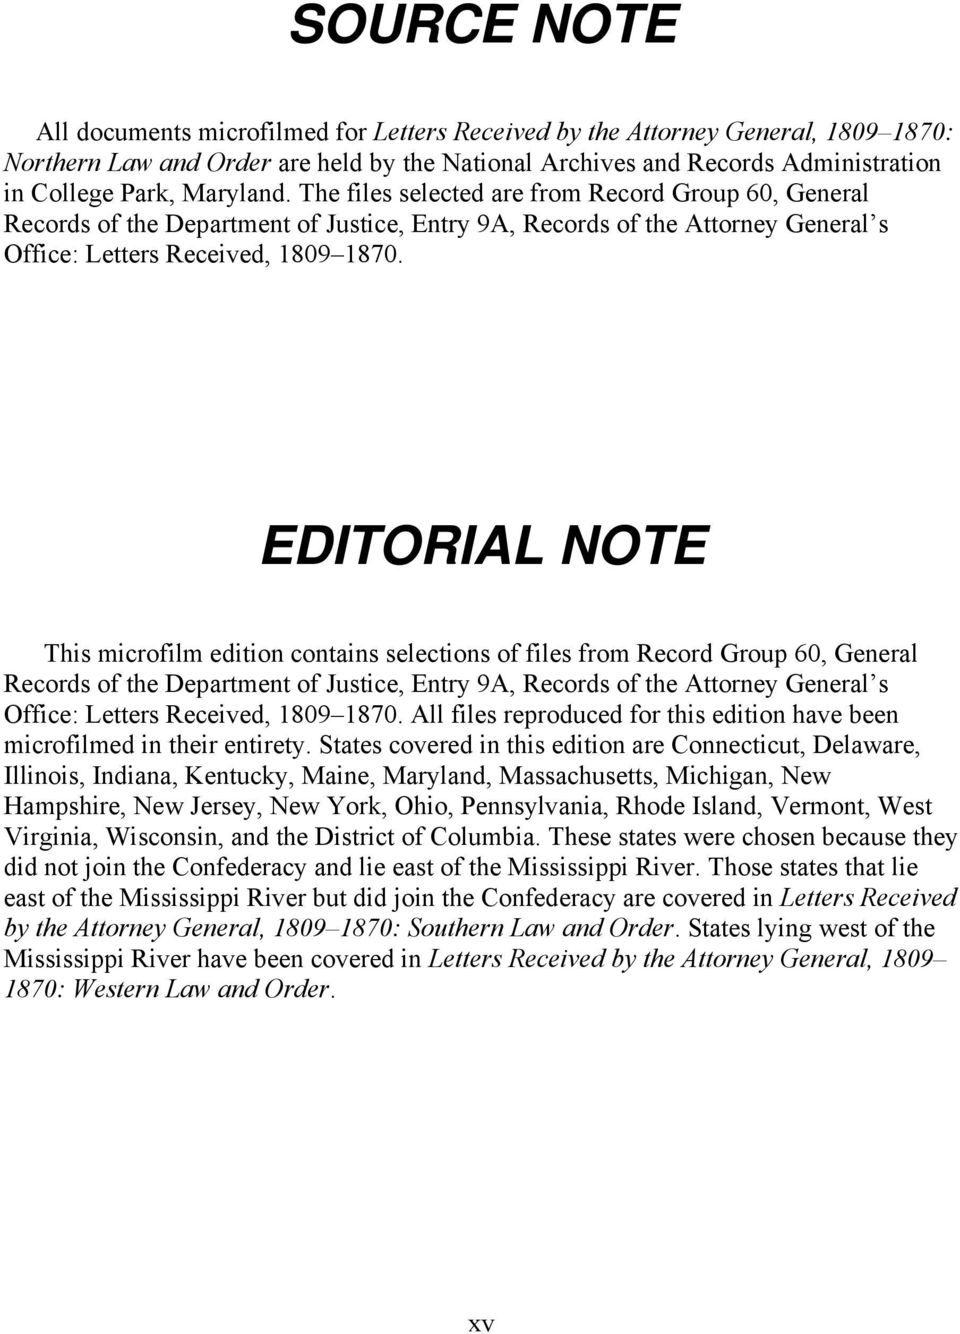 EDITORIAL NOTE This microfilm edition contains selections of files from Record Group 60, General Records of the Department of Justice, Entry 9A, Records of the Attorney General s Office: Letters